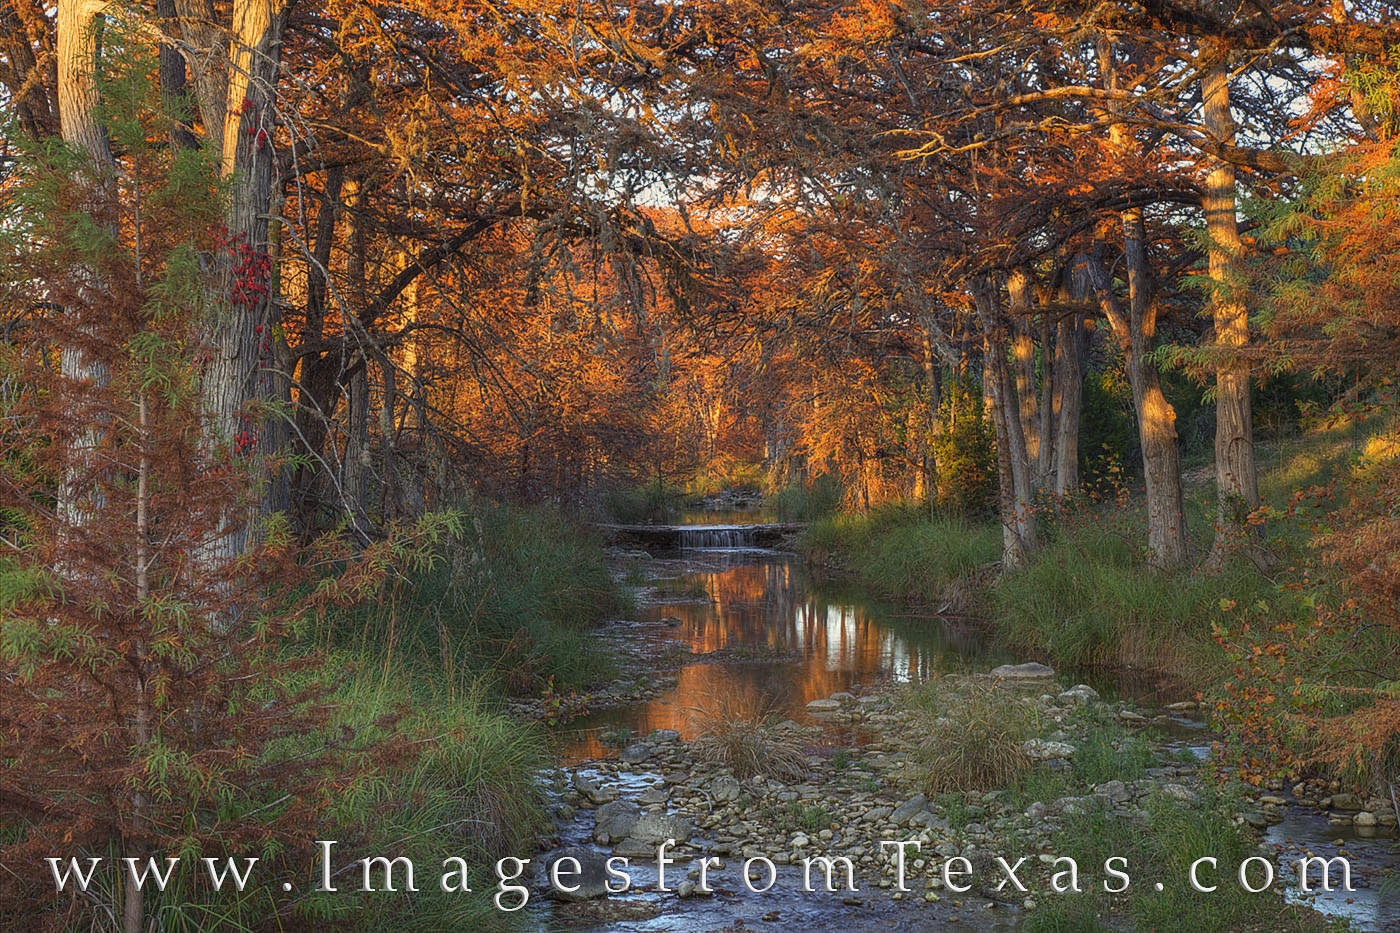 texas hill country, fall colors, sabinal river, waterfall, autumn colors, autumn, texas texas rivers, texas fall colors, medina, vanderpool, photo